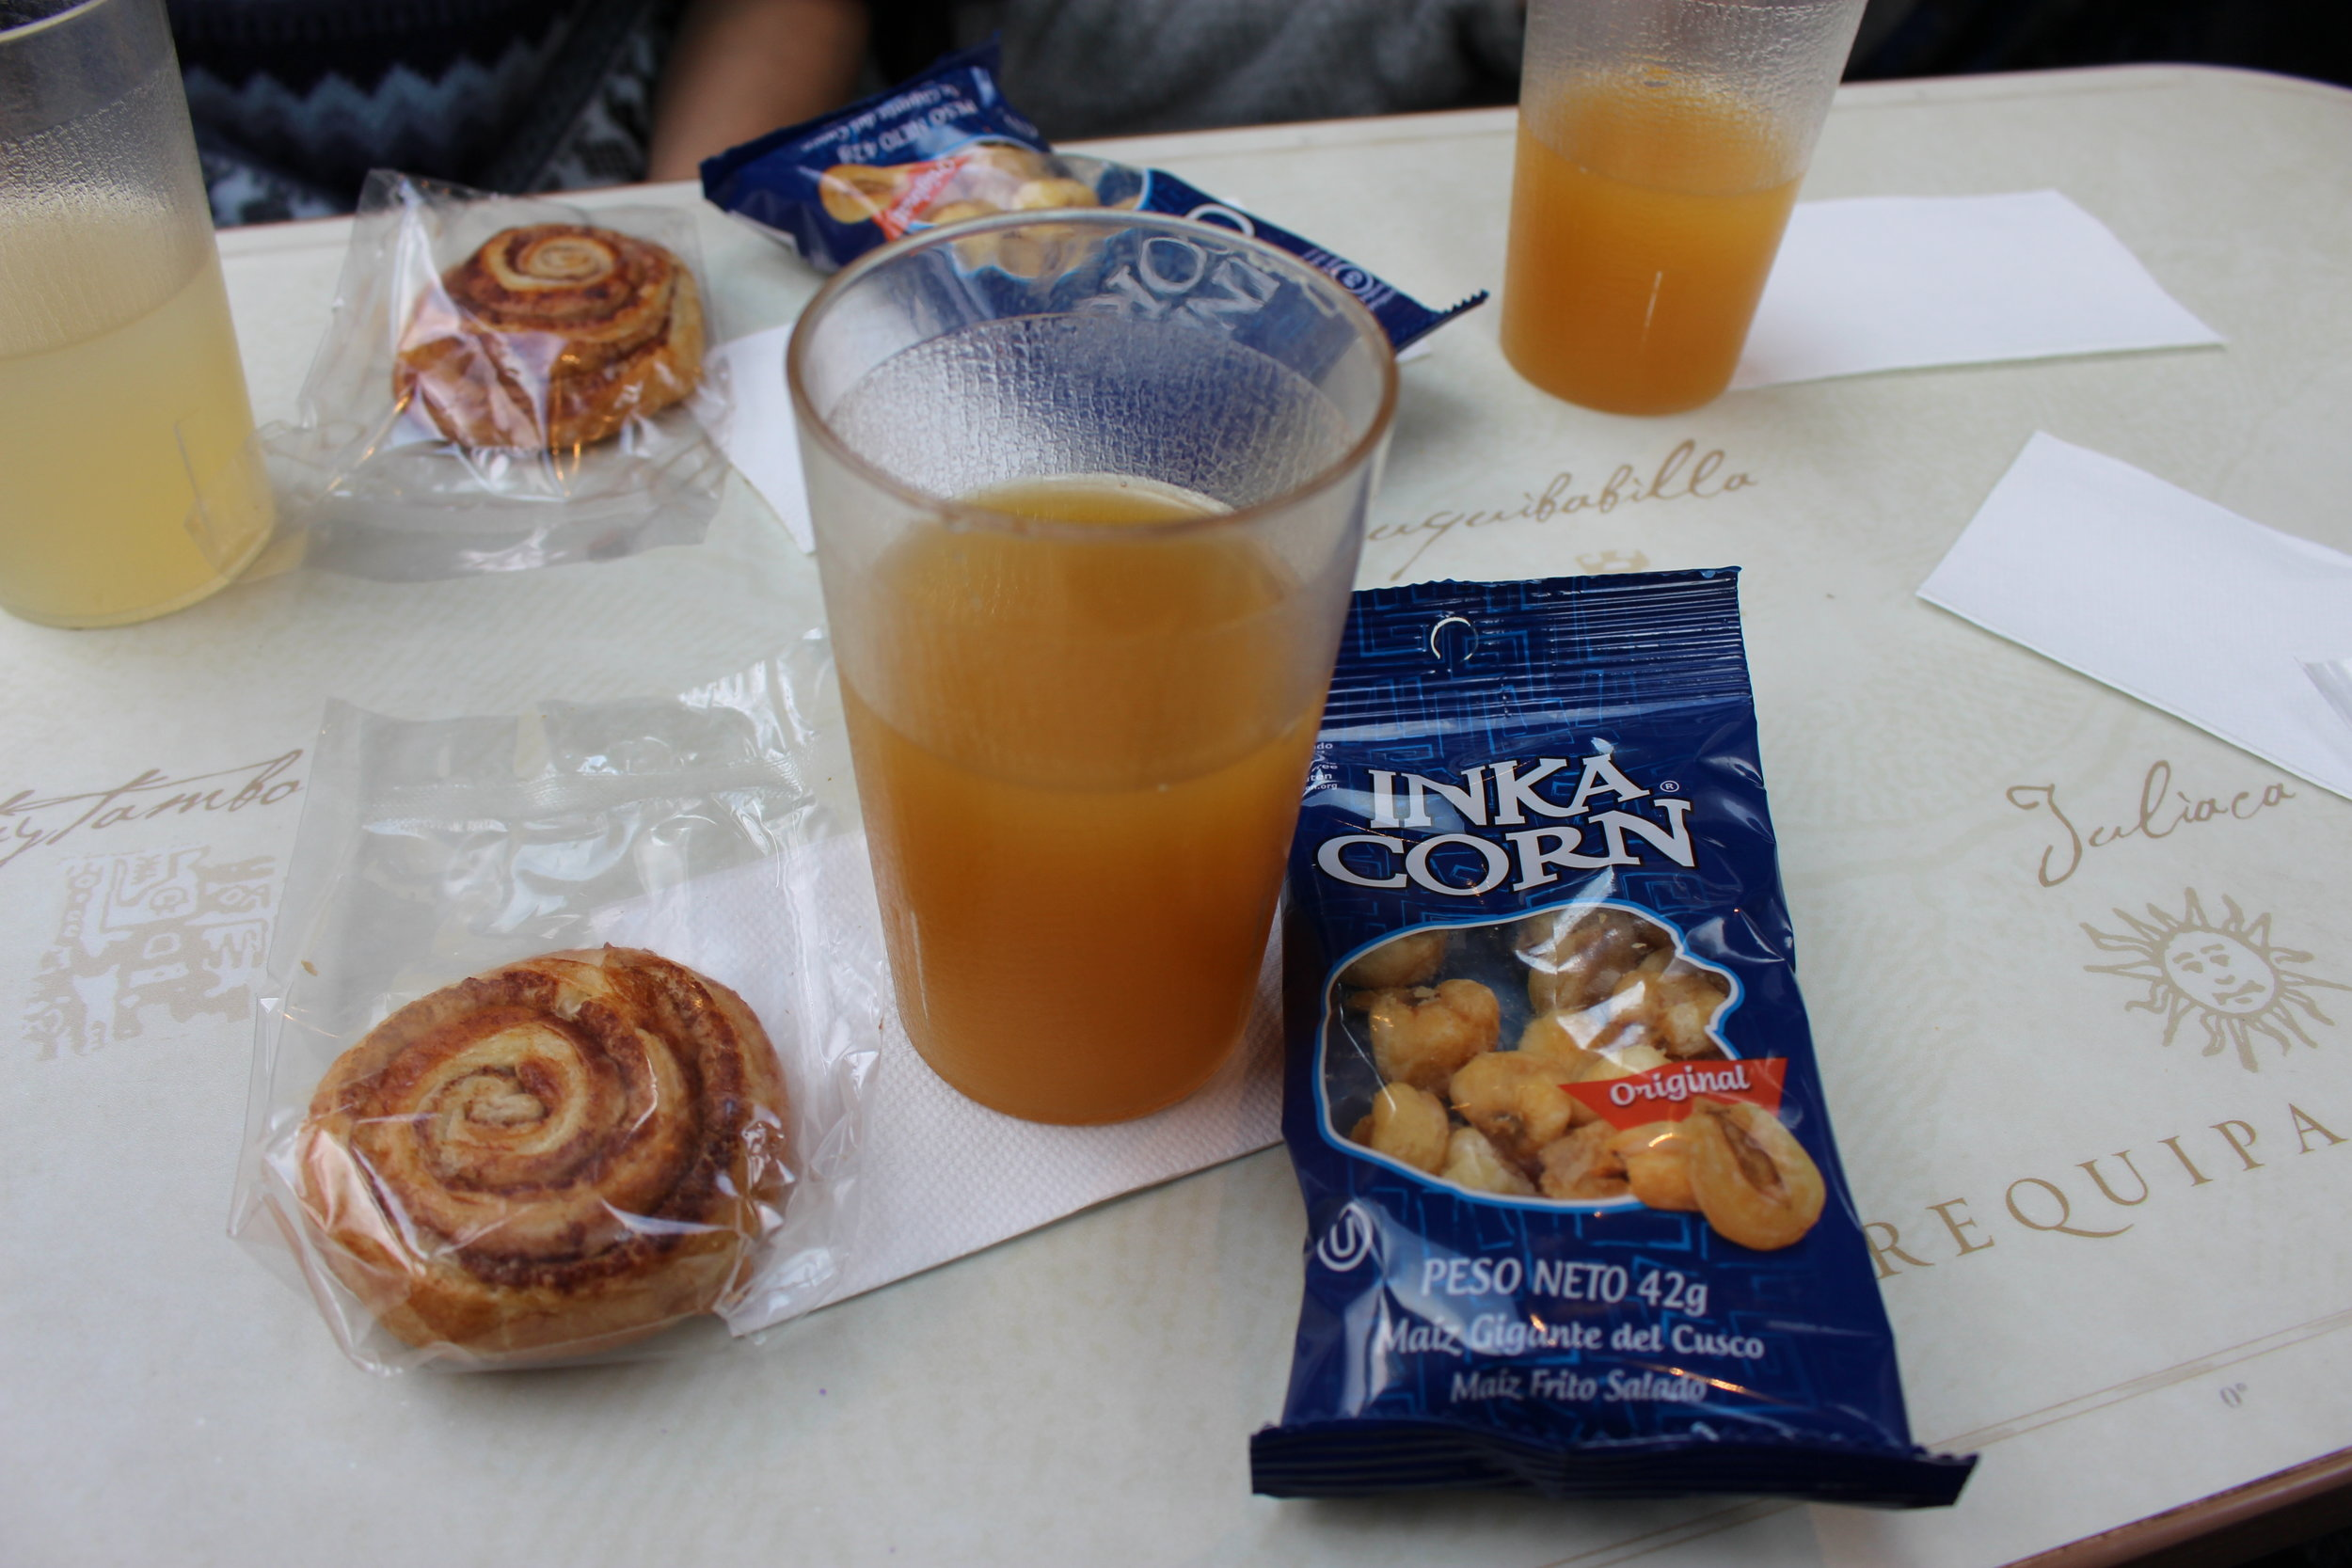 Later that afternoon we went on the train again to go back to Ollantaytambo. This time they served up cinnamon buns and a typical snack, Inca Corn. The cinnamon bun was very good, but I wanted to save the Inca Corn for when I got back to the U.S. I still haven't tried it.  Restaurant: PeruRail Train